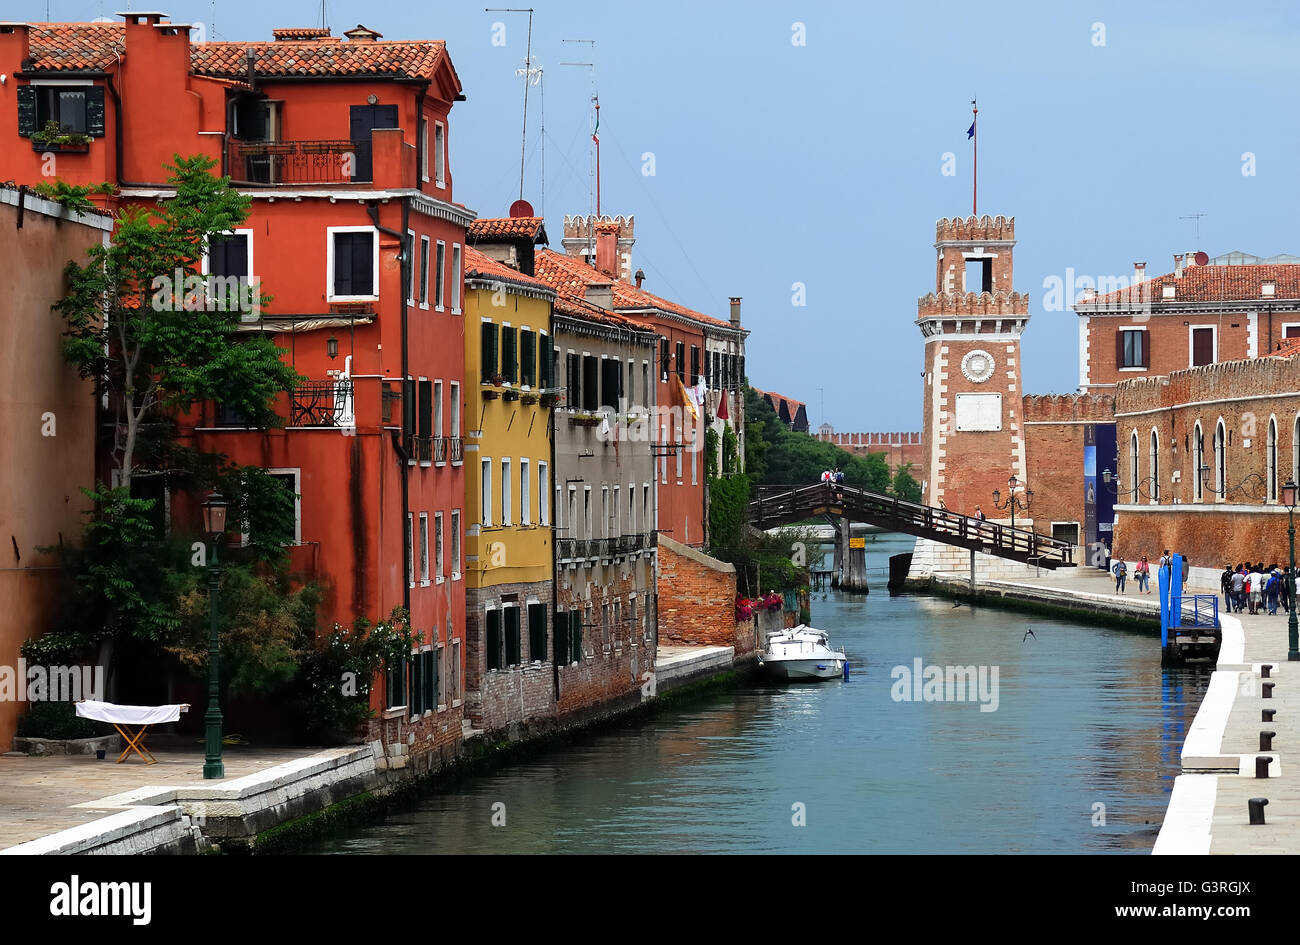 Venice, Italy. The of Arsenale. - Stock Image